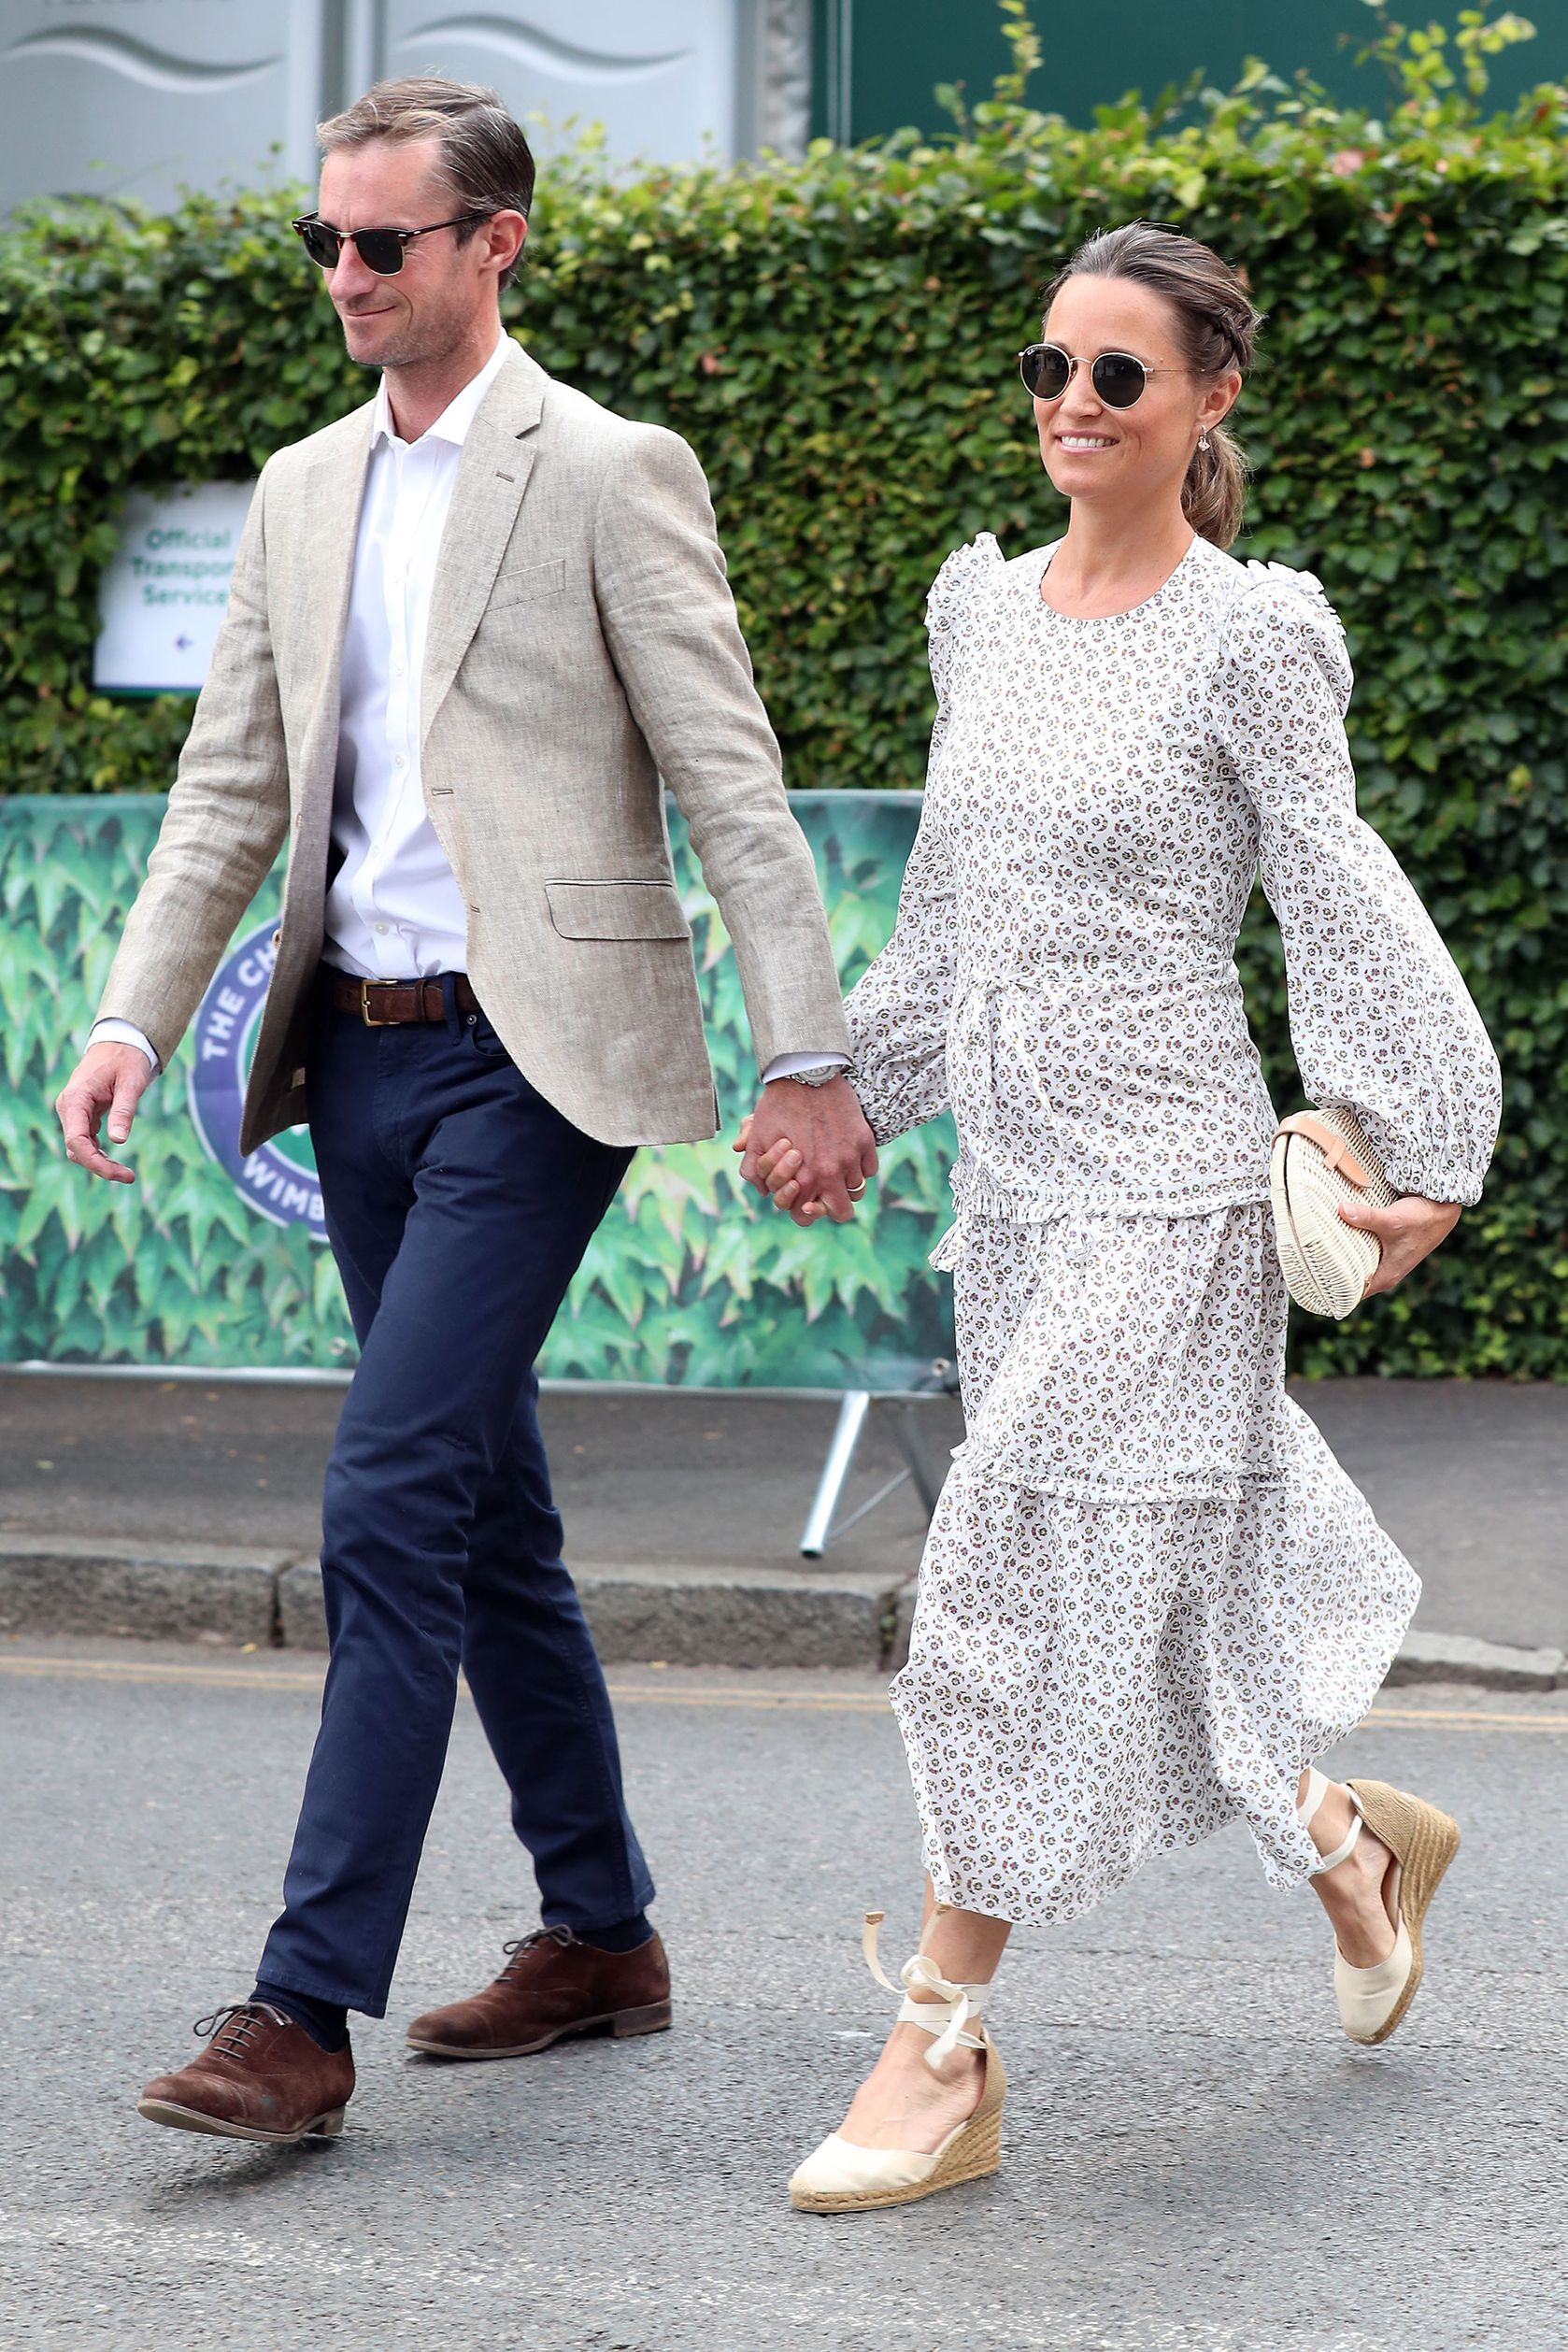 Pippa Middleton will give birth at the same hospital as her sister